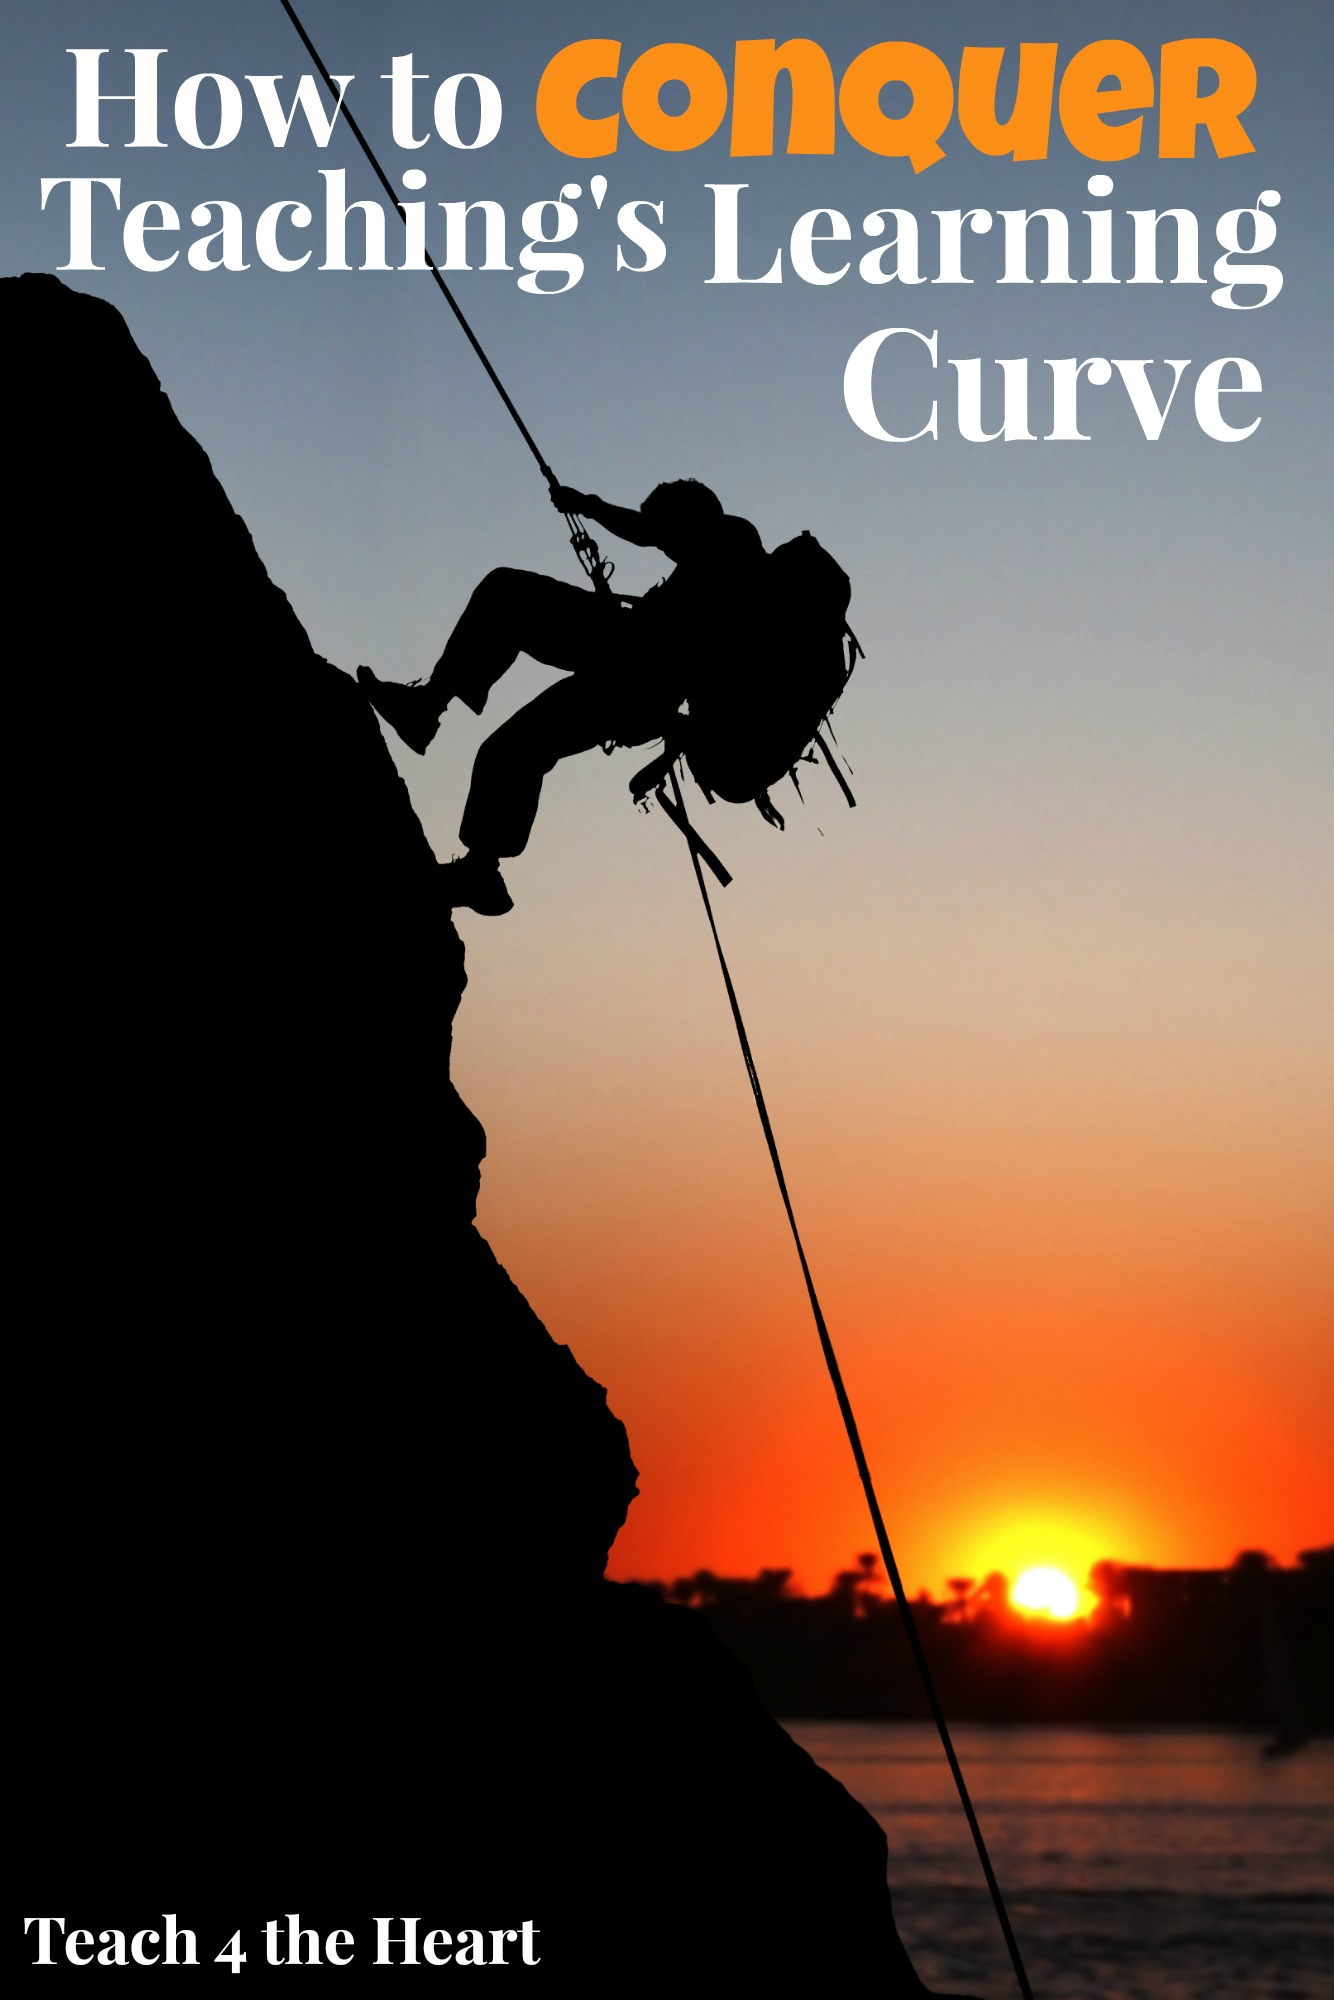 How to Conquer Teaching's Learning Curve